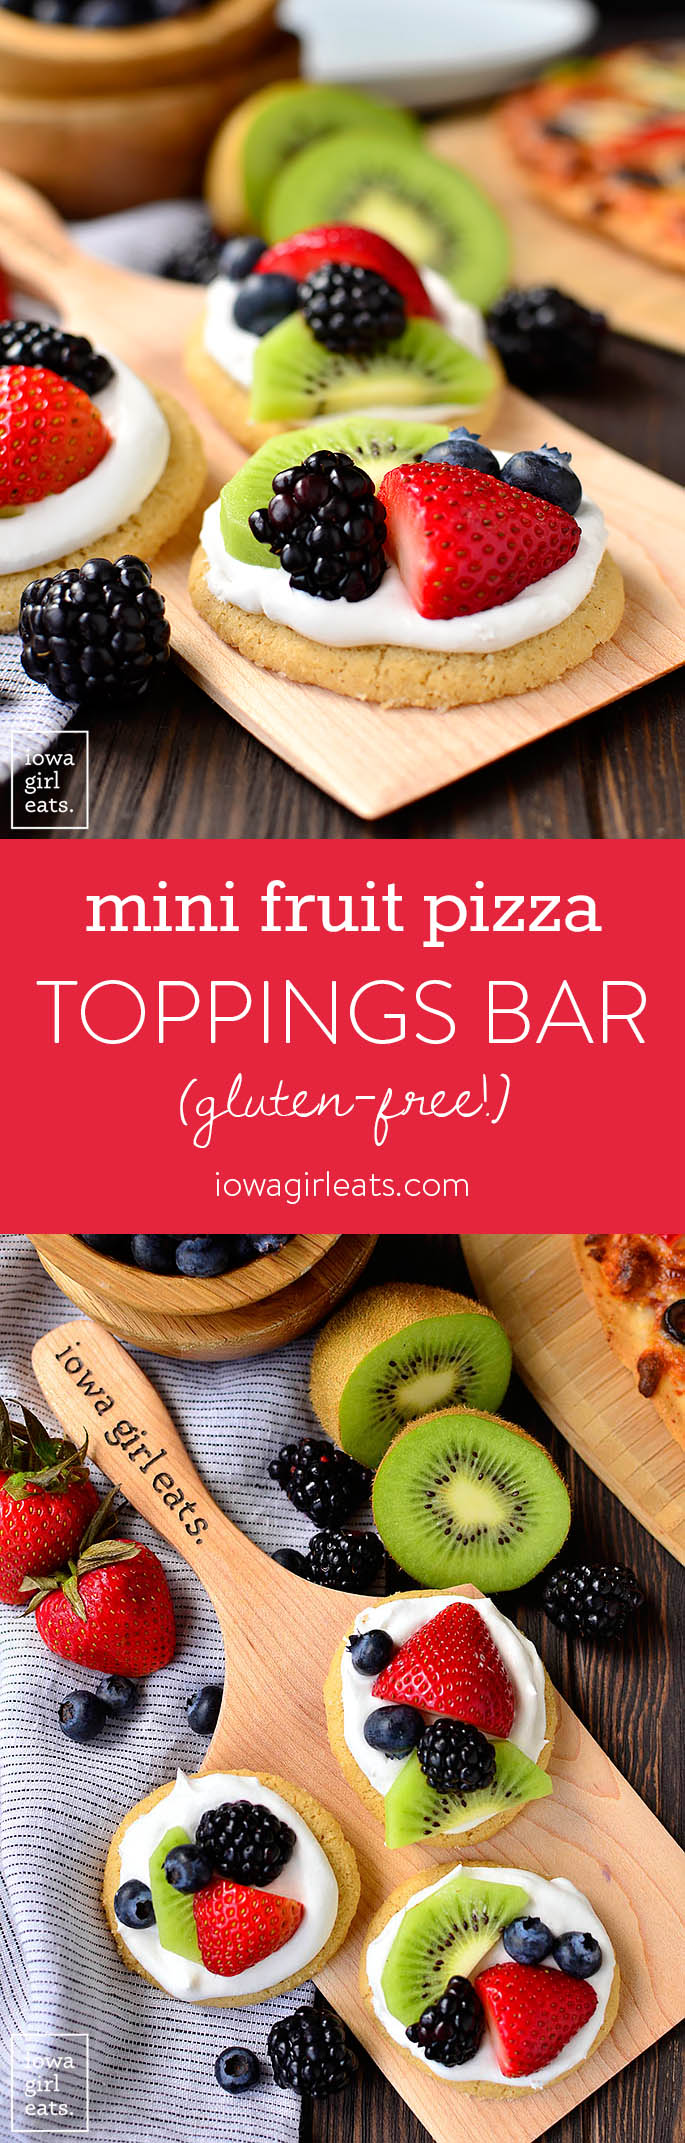 Customize pizza night with Mini Fruit Pizzas plus a DIY pizza toppings bar! This gluten-free dinner and dessert combo is fun, easy, and delicious.   iowagirleats.com